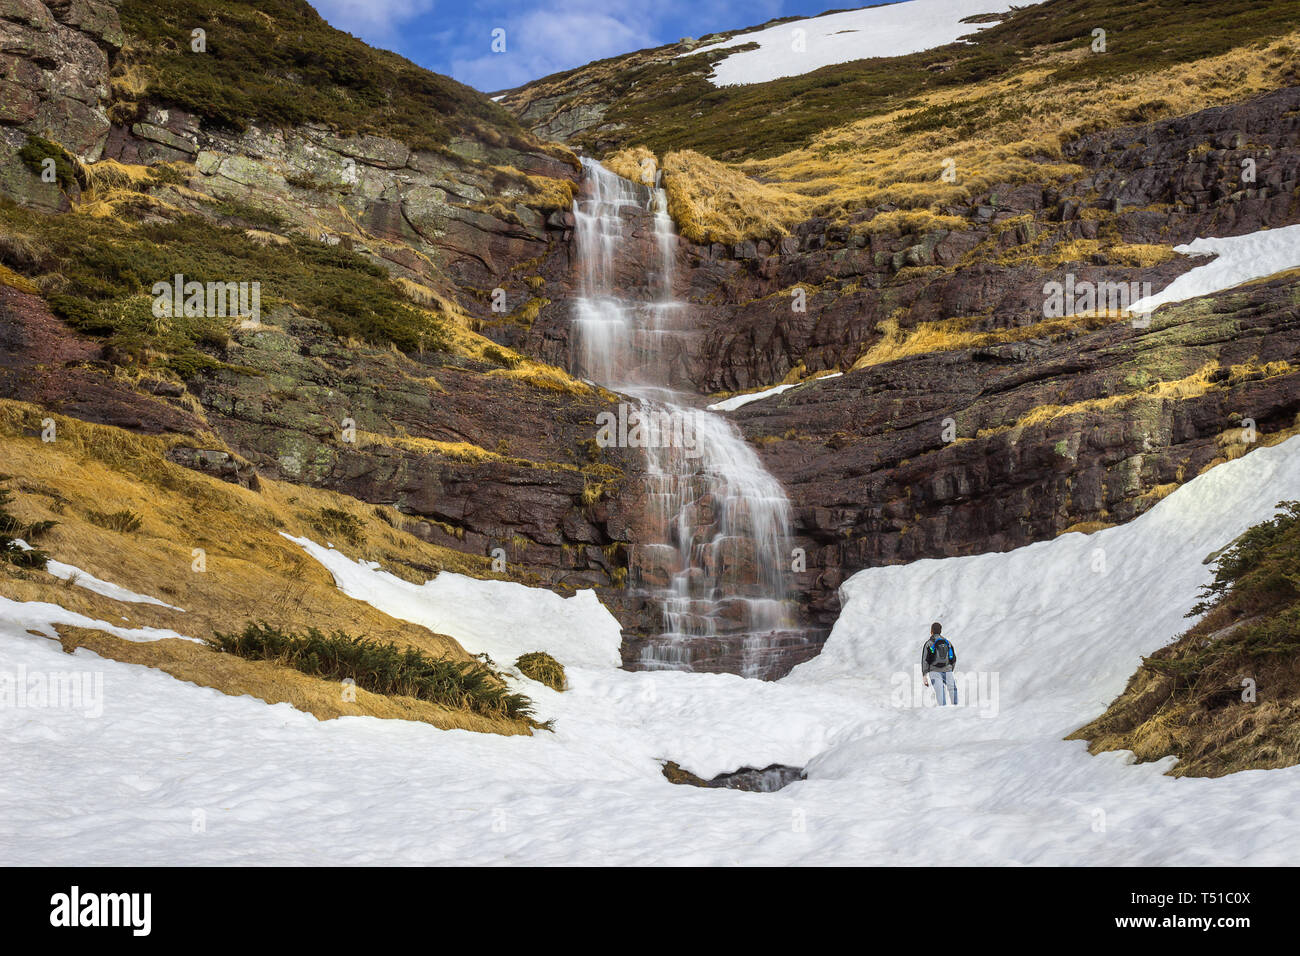 Mountain hiker standing in front of the large, scenic, beautiful waterfall falling from red rocky cliff under the snow - Stock Image